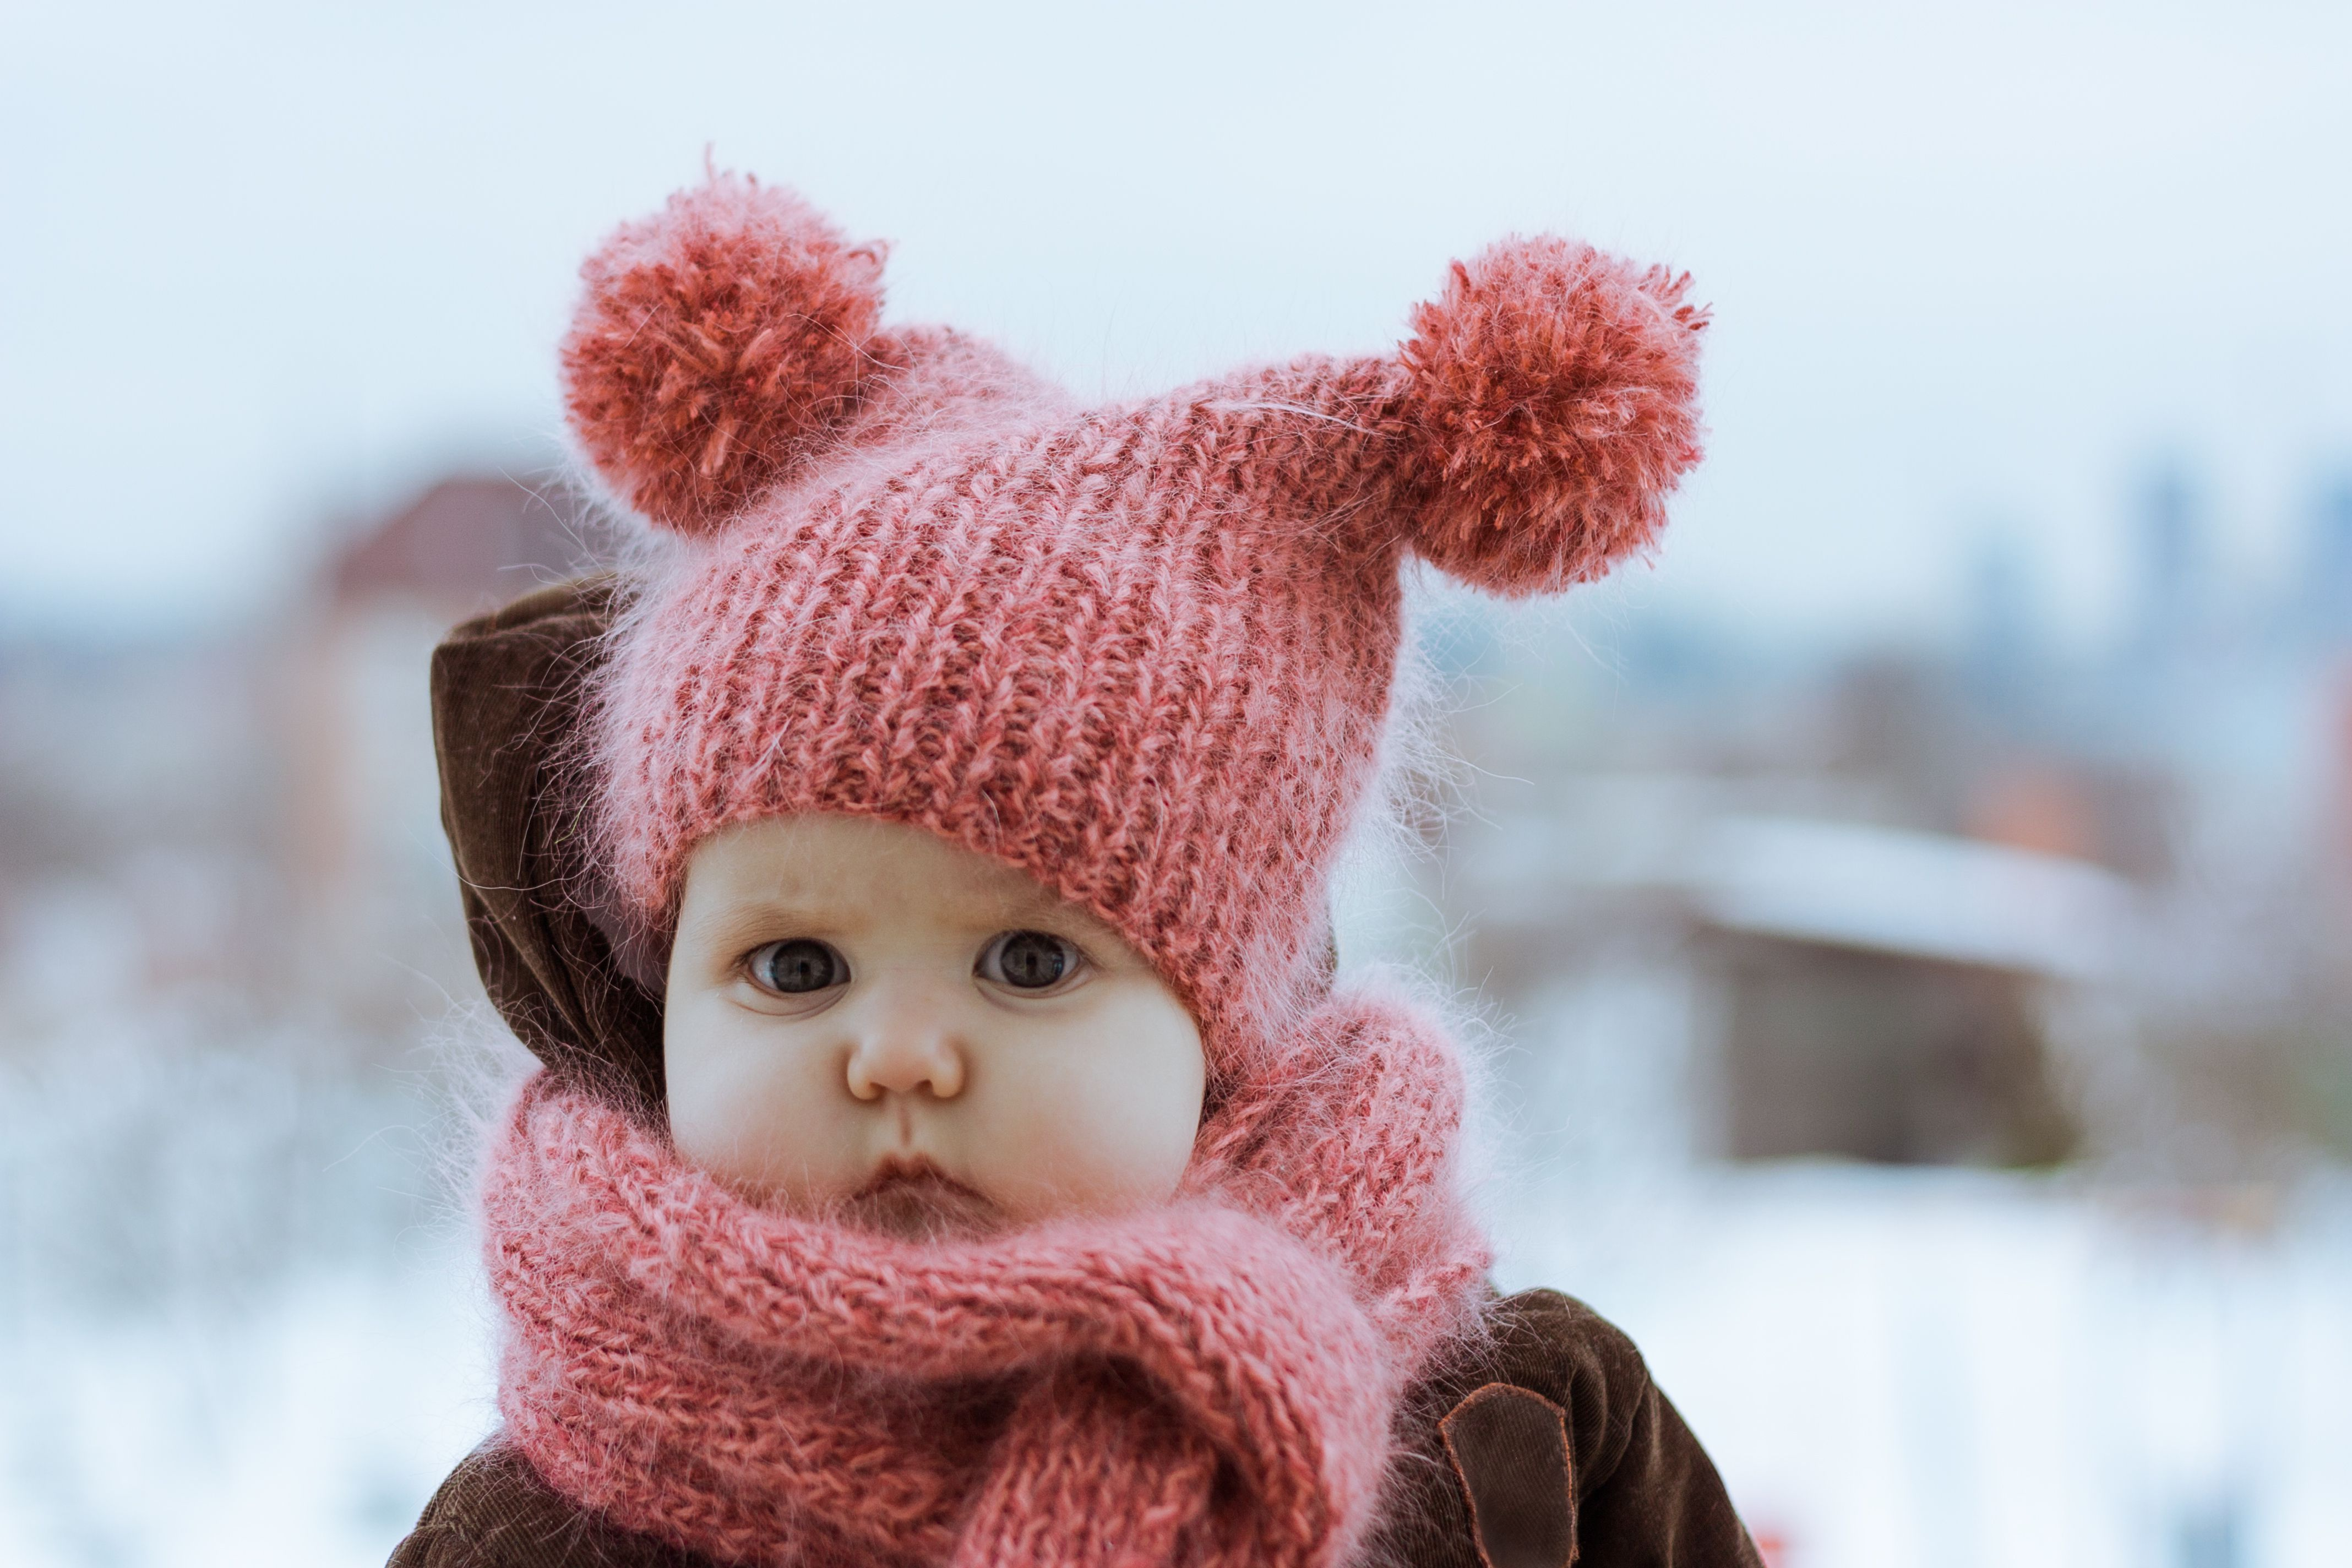 Baby in a knit cap